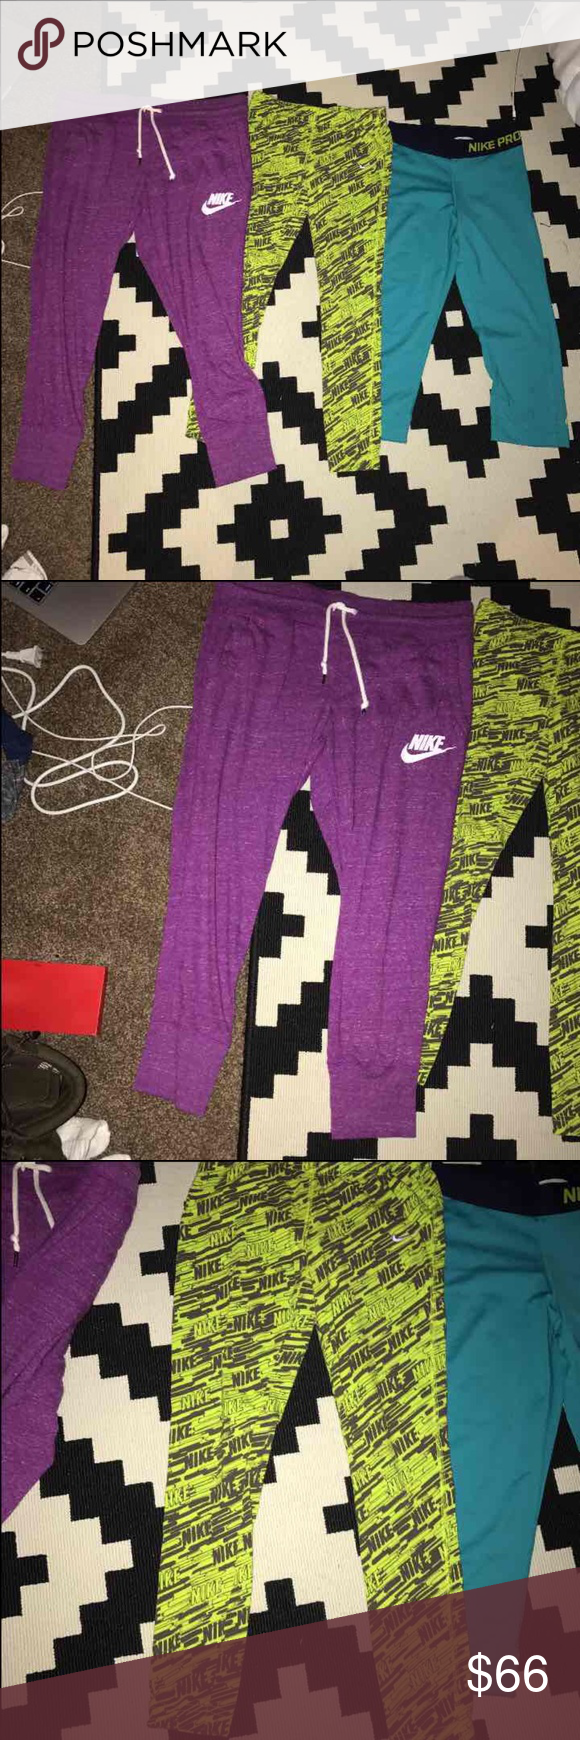 Nike leggings Purple Nike cotton joggers  New with tags  Very soft very comfortable  size S    Lime green Nike printed leggings  Never worn but no tags  Size S    blue spandex Nike pro  Worn once or twice  Size XS but fits a S Nike Pants Leggings